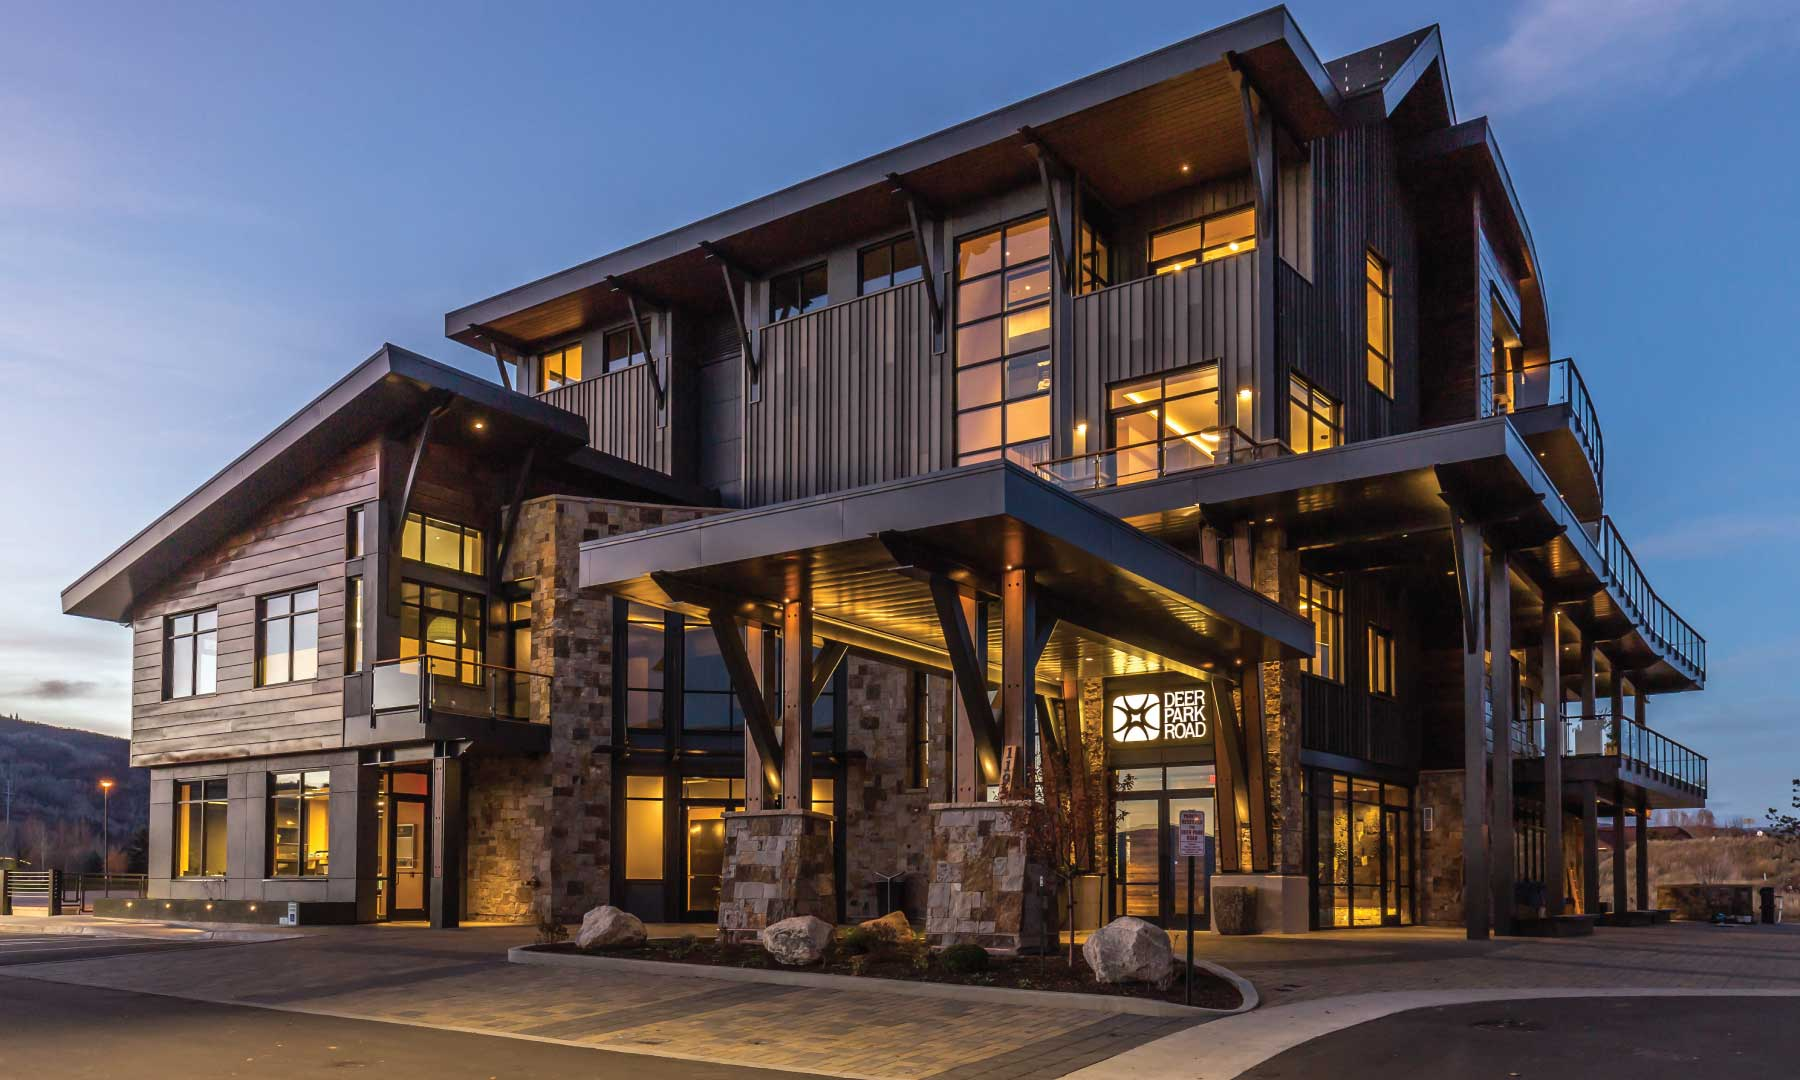 central electric steamboat springs yampa valley colorado electrical contractor install DEER PARK 7 - Photography